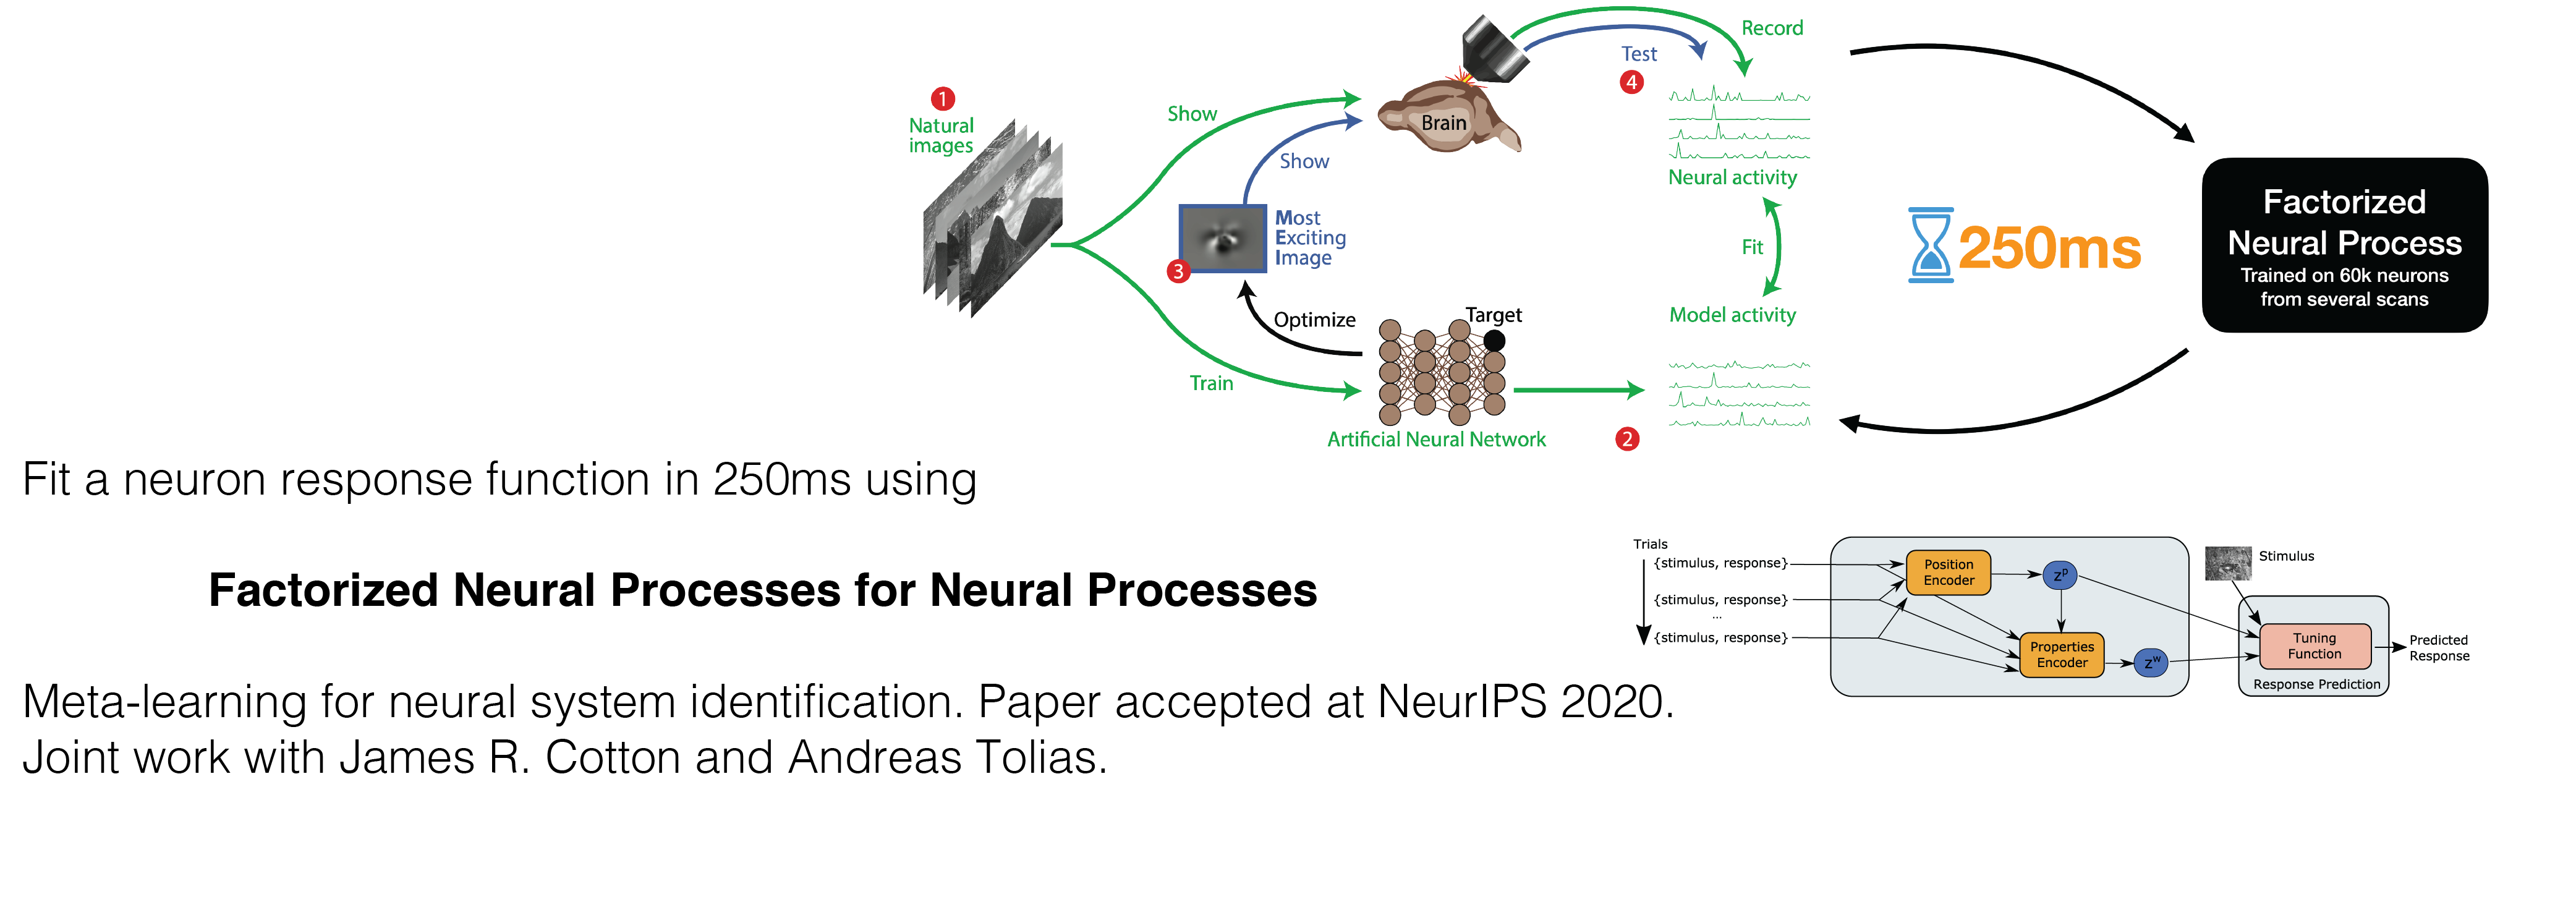 Paper accepted at NeurIPS 2020